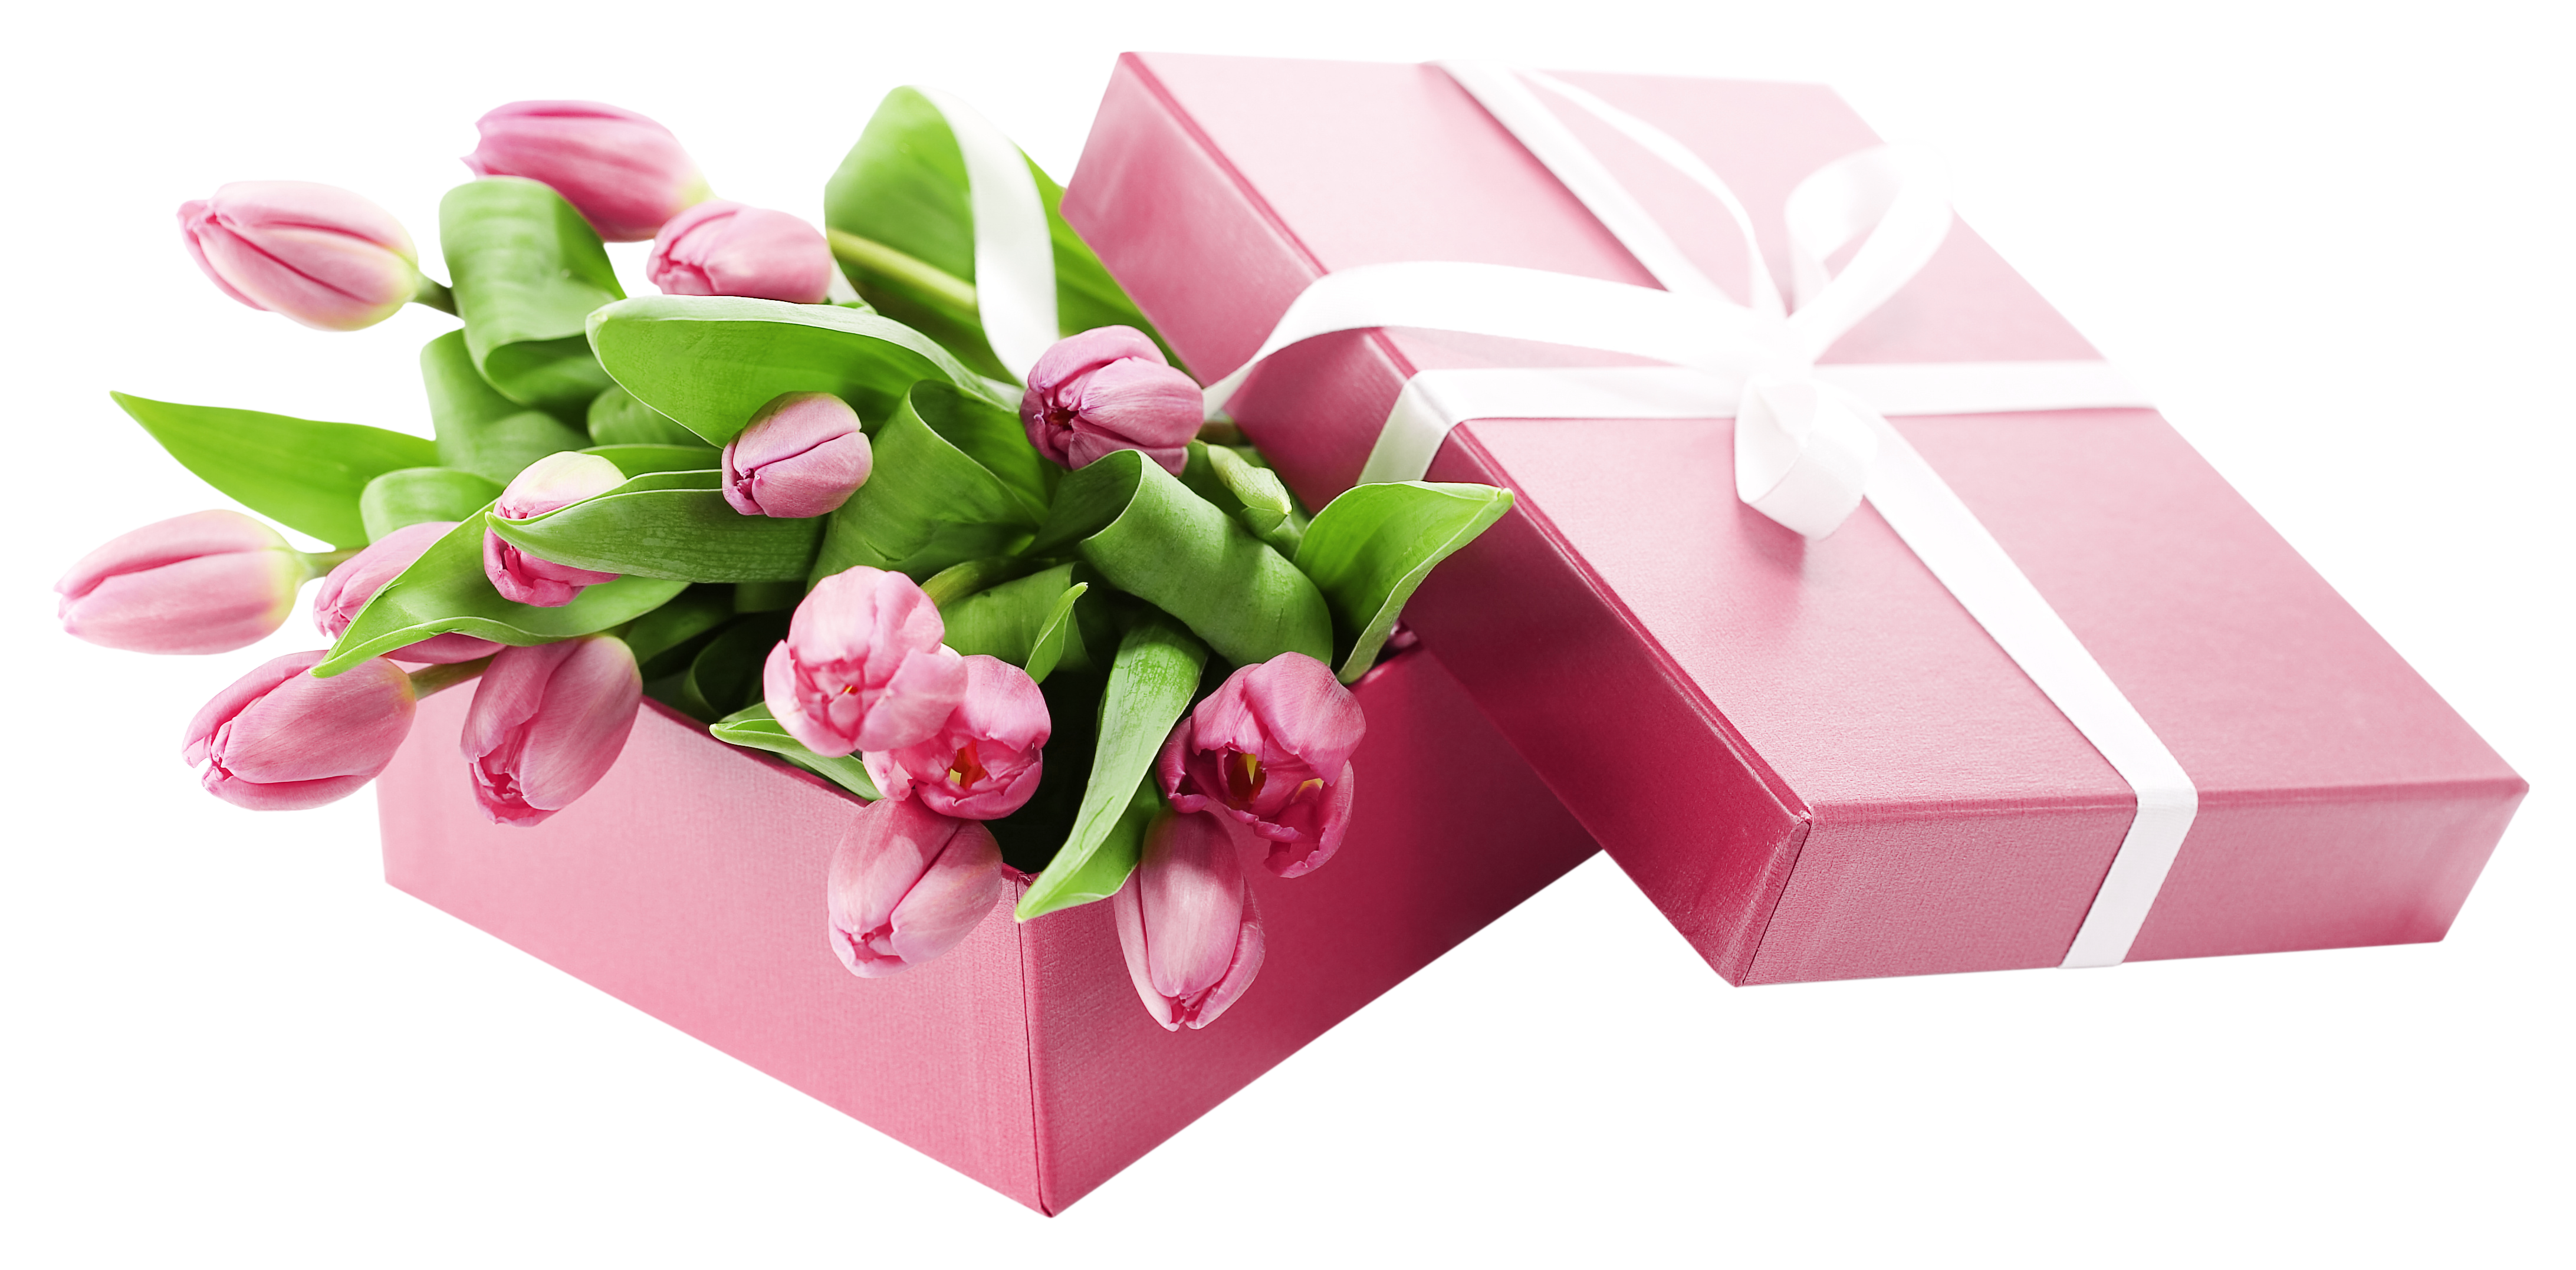 With pink tulips transparent. Flower box png